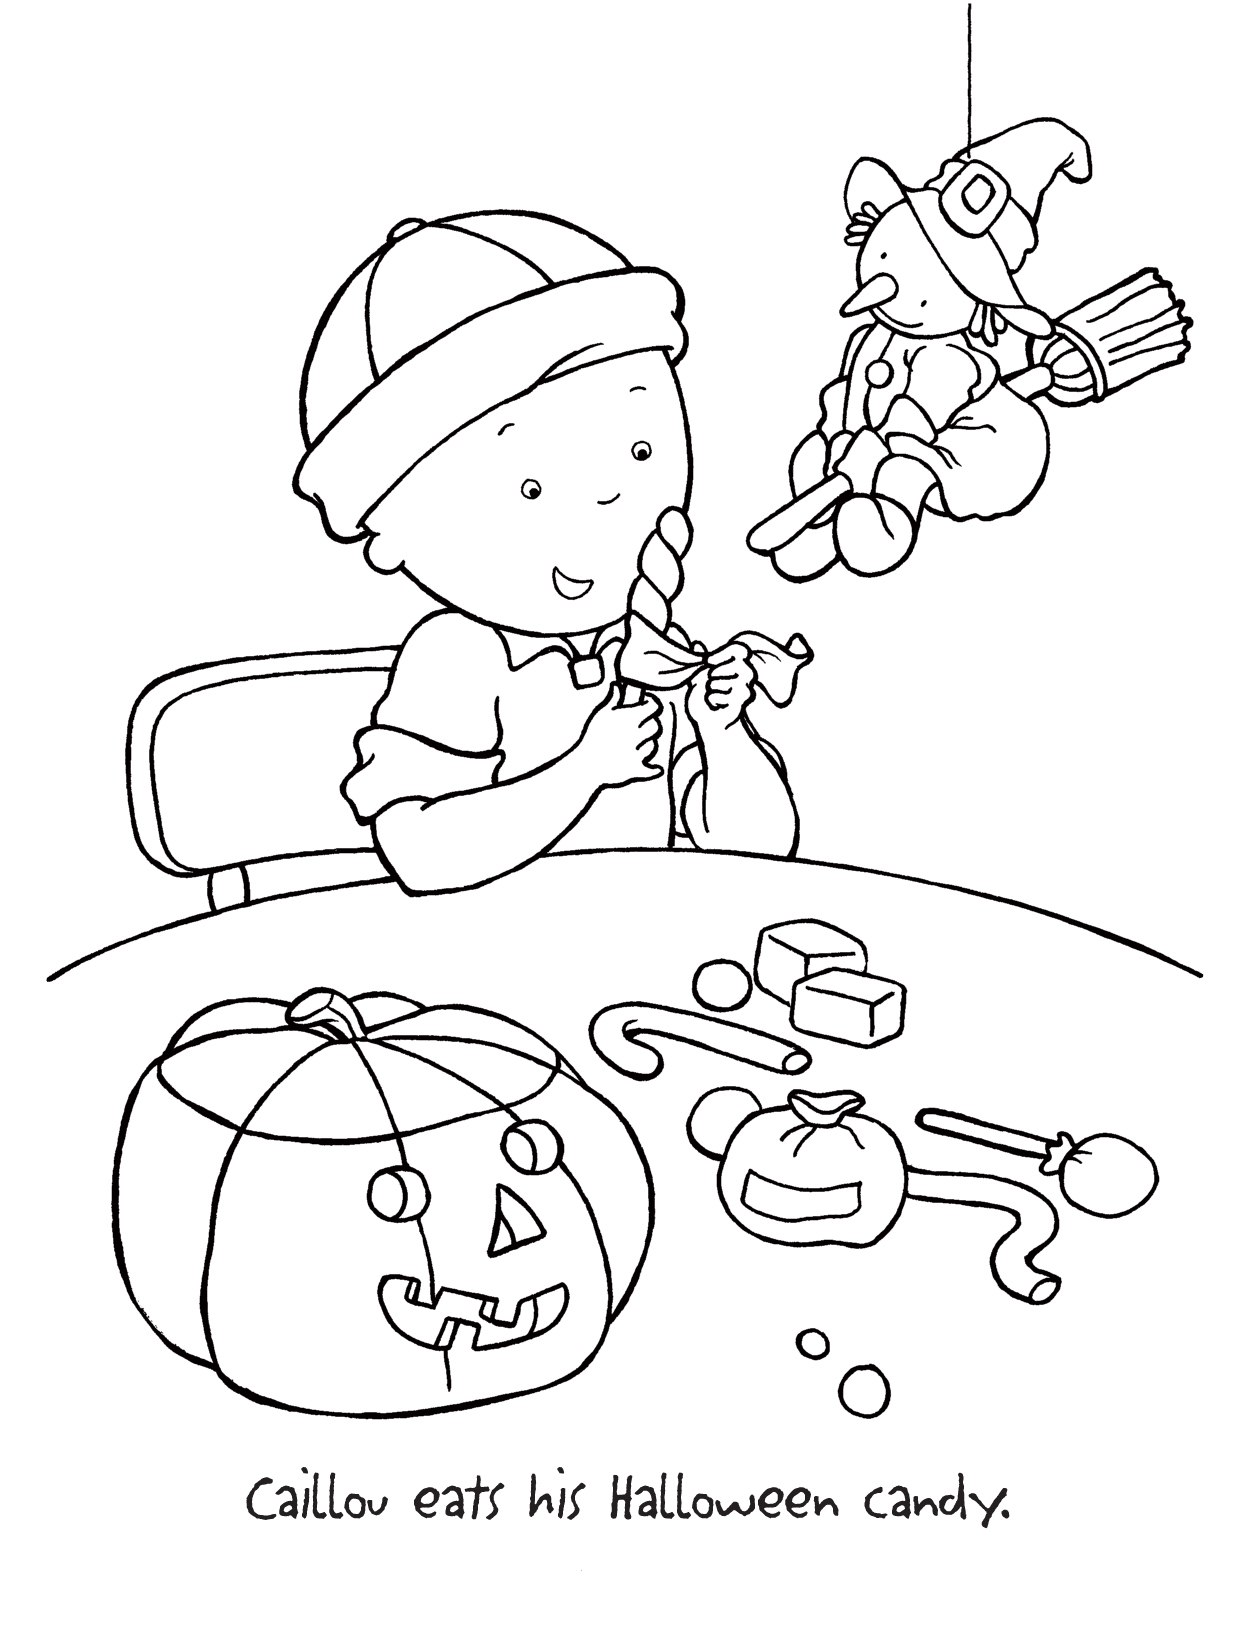 caillou christmas coloring pages | TimyKids